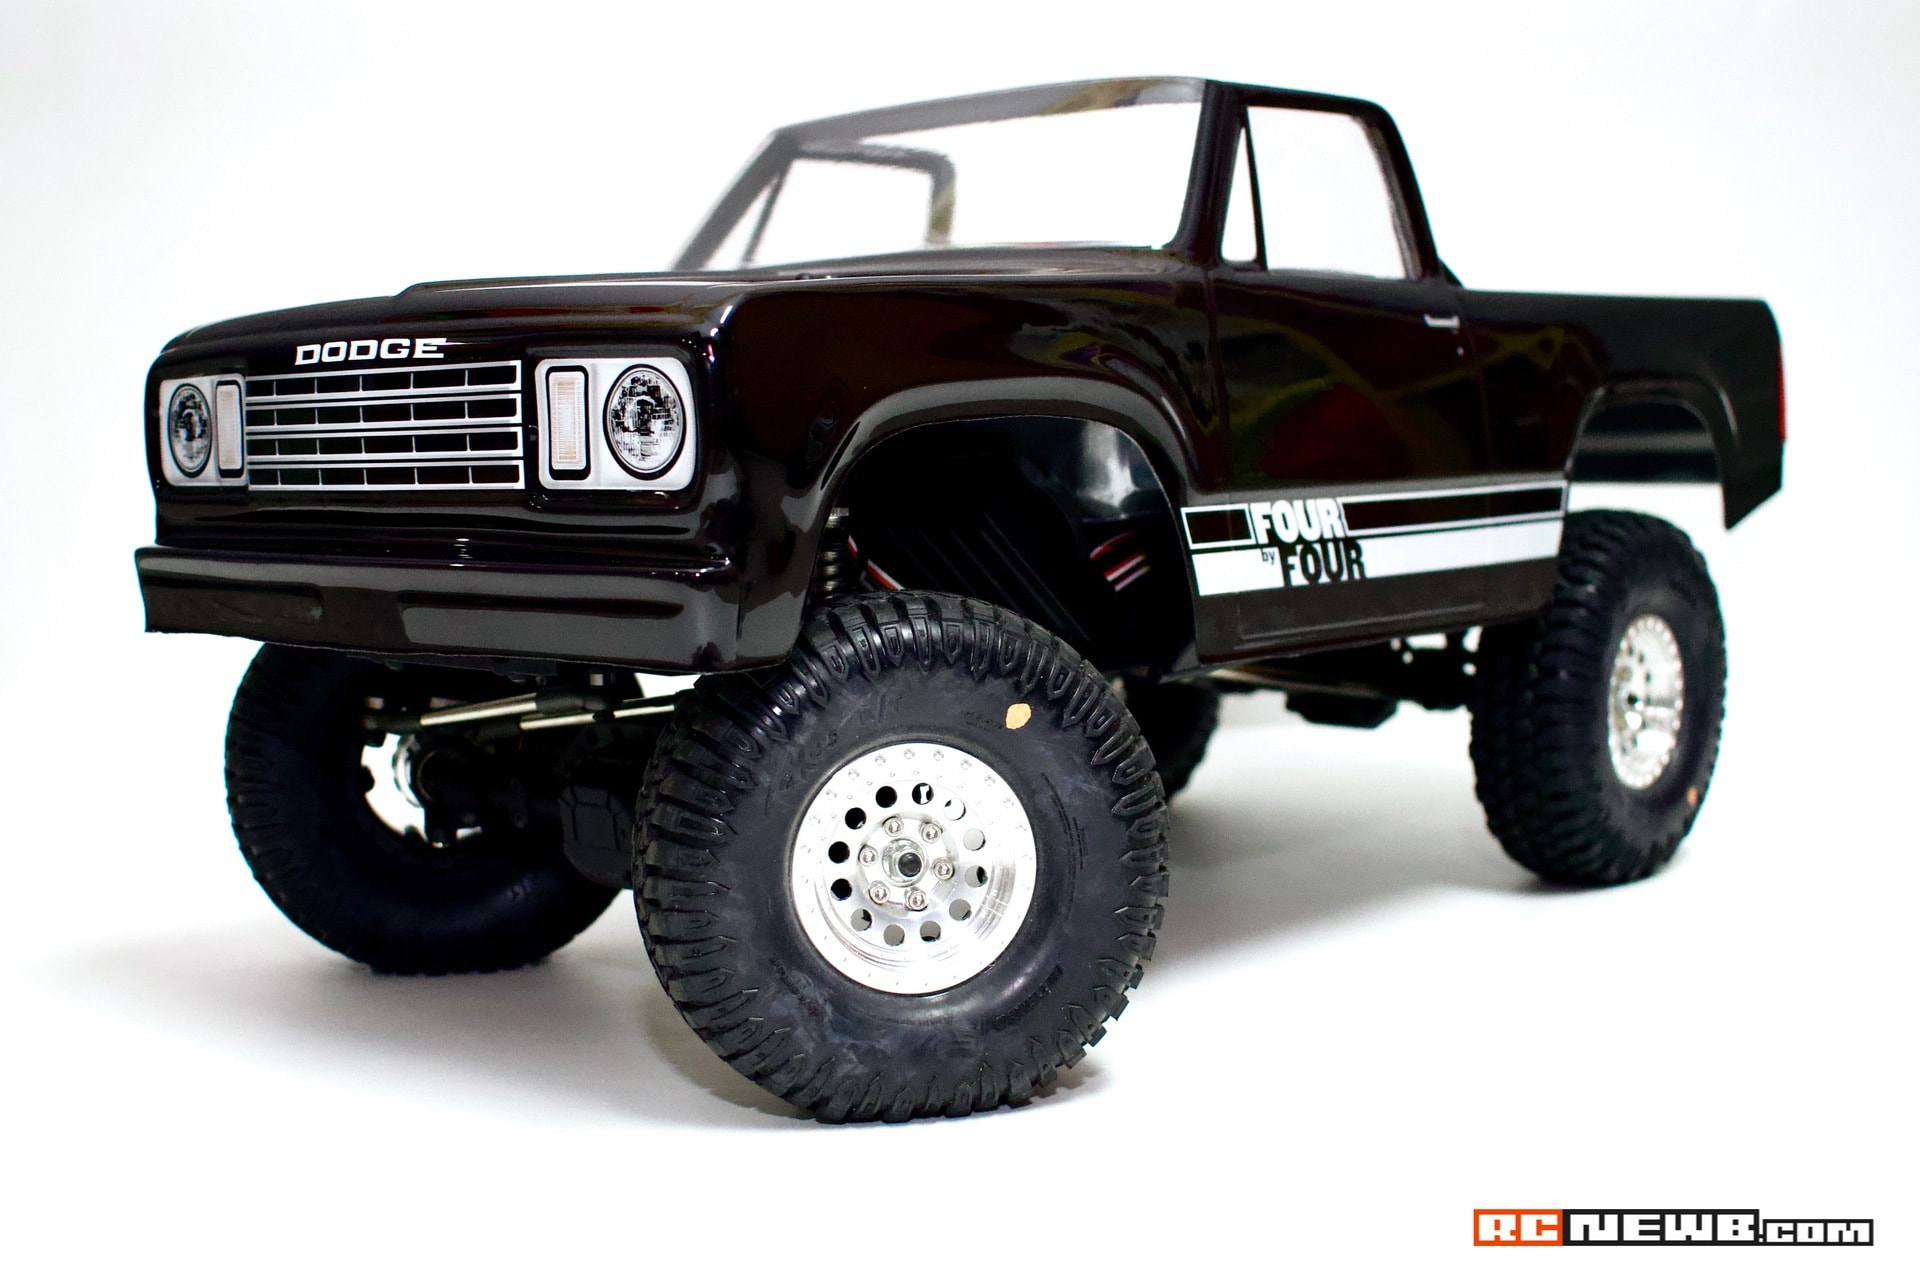 Hands-on with Pro-Line's 1977 Dodge Ramcharger R/C Crawler Body